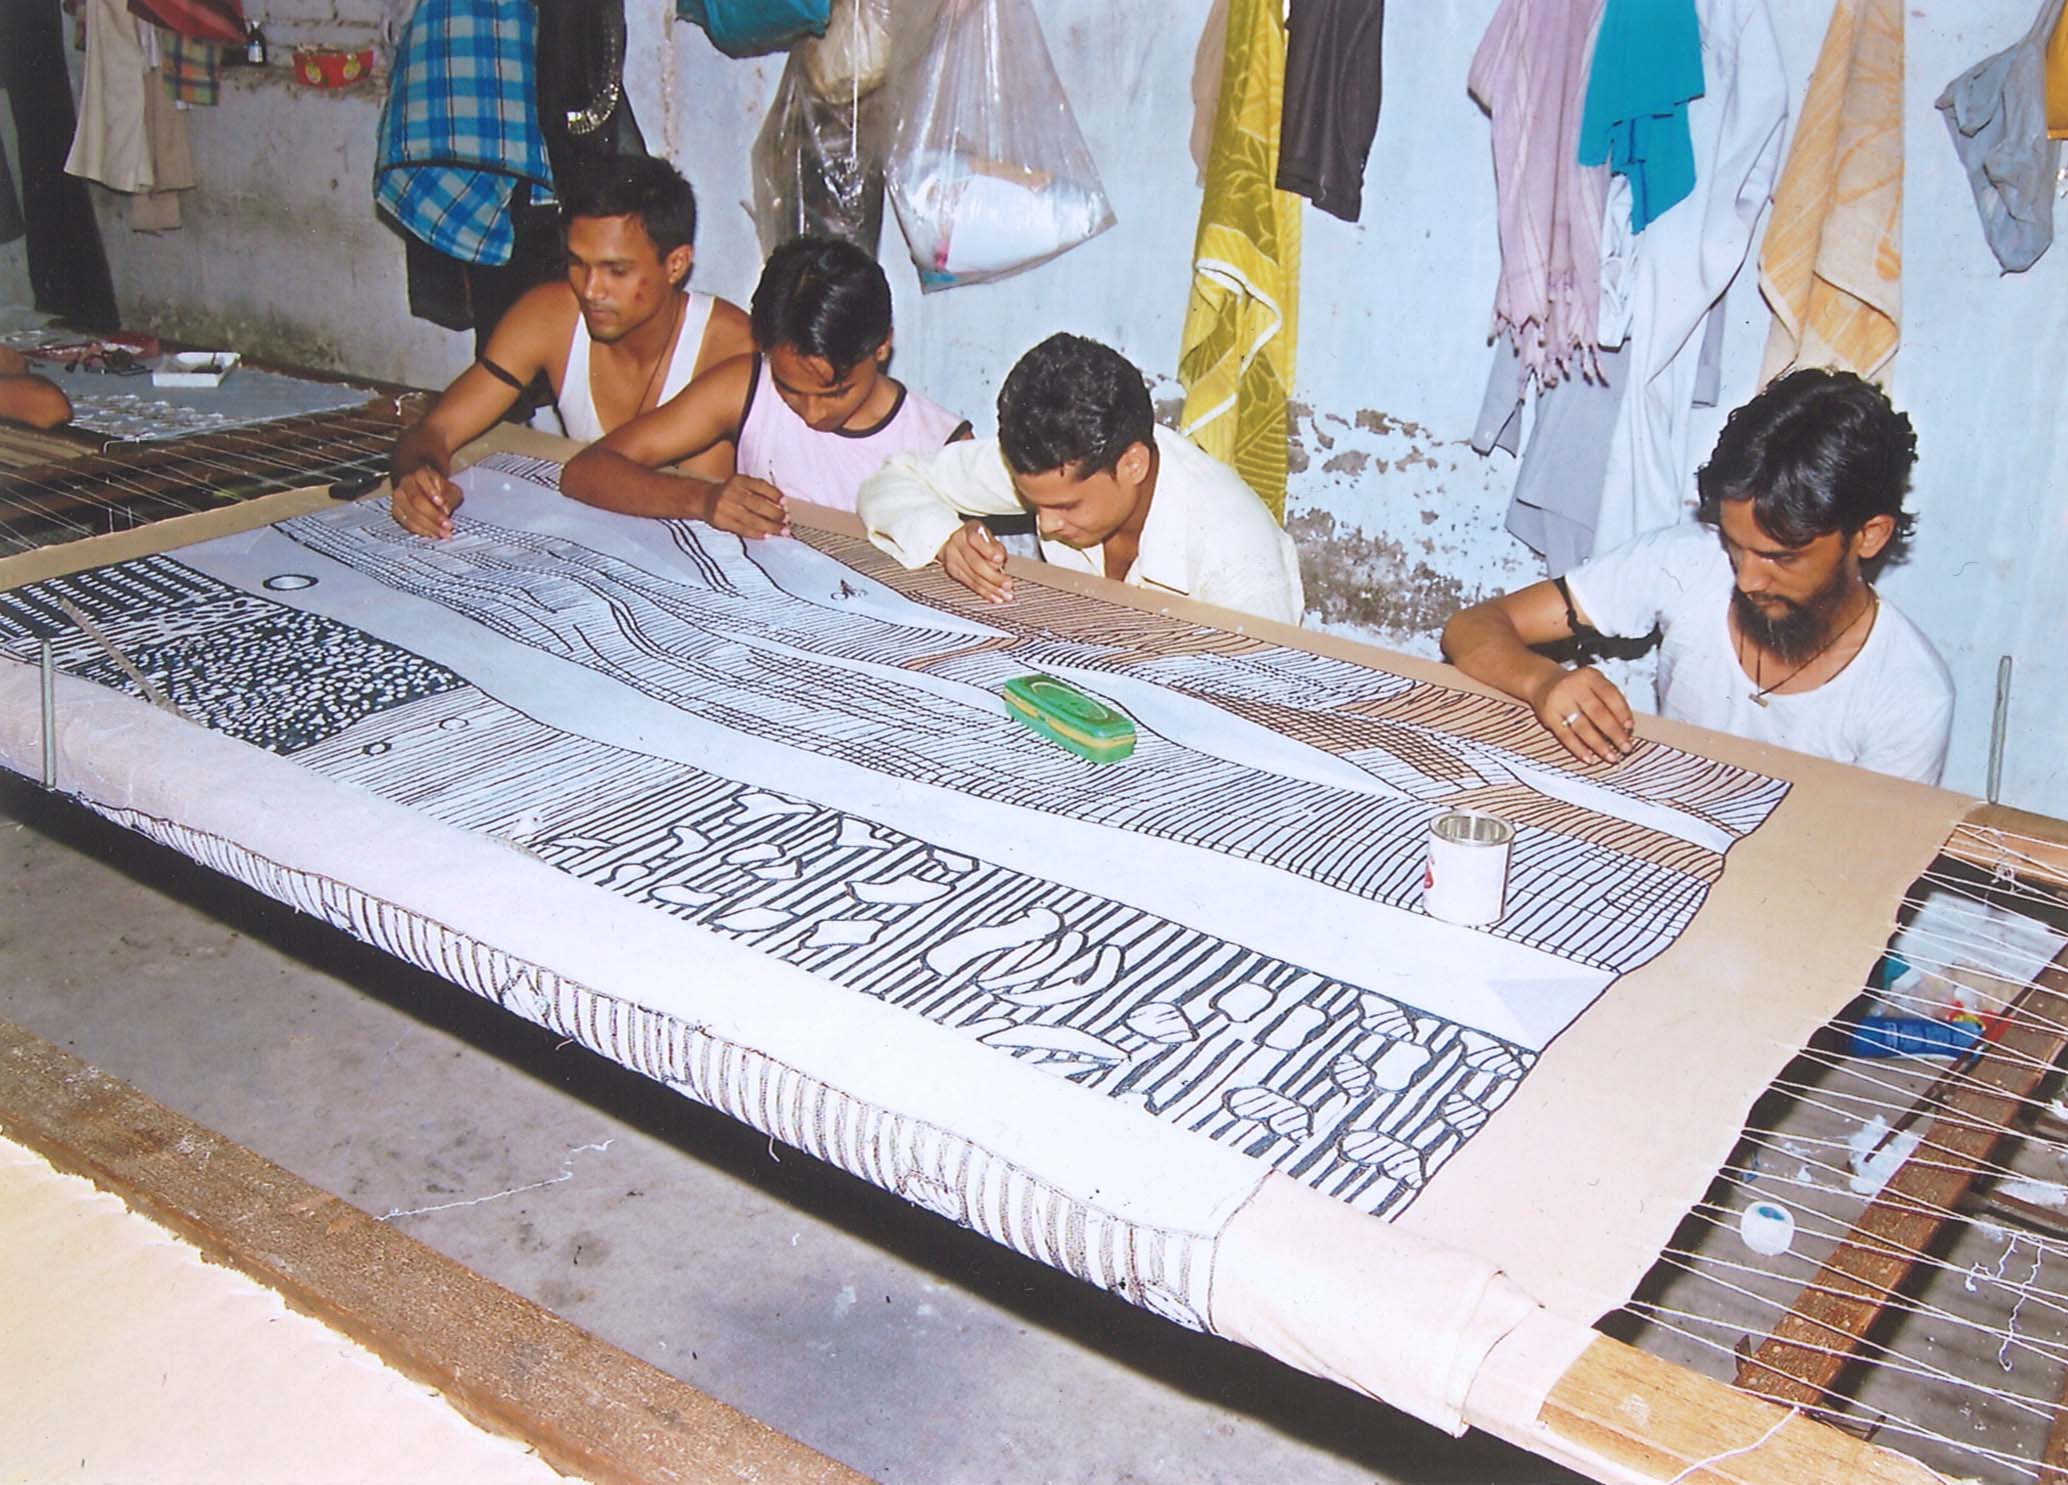 Production process of Cells, India